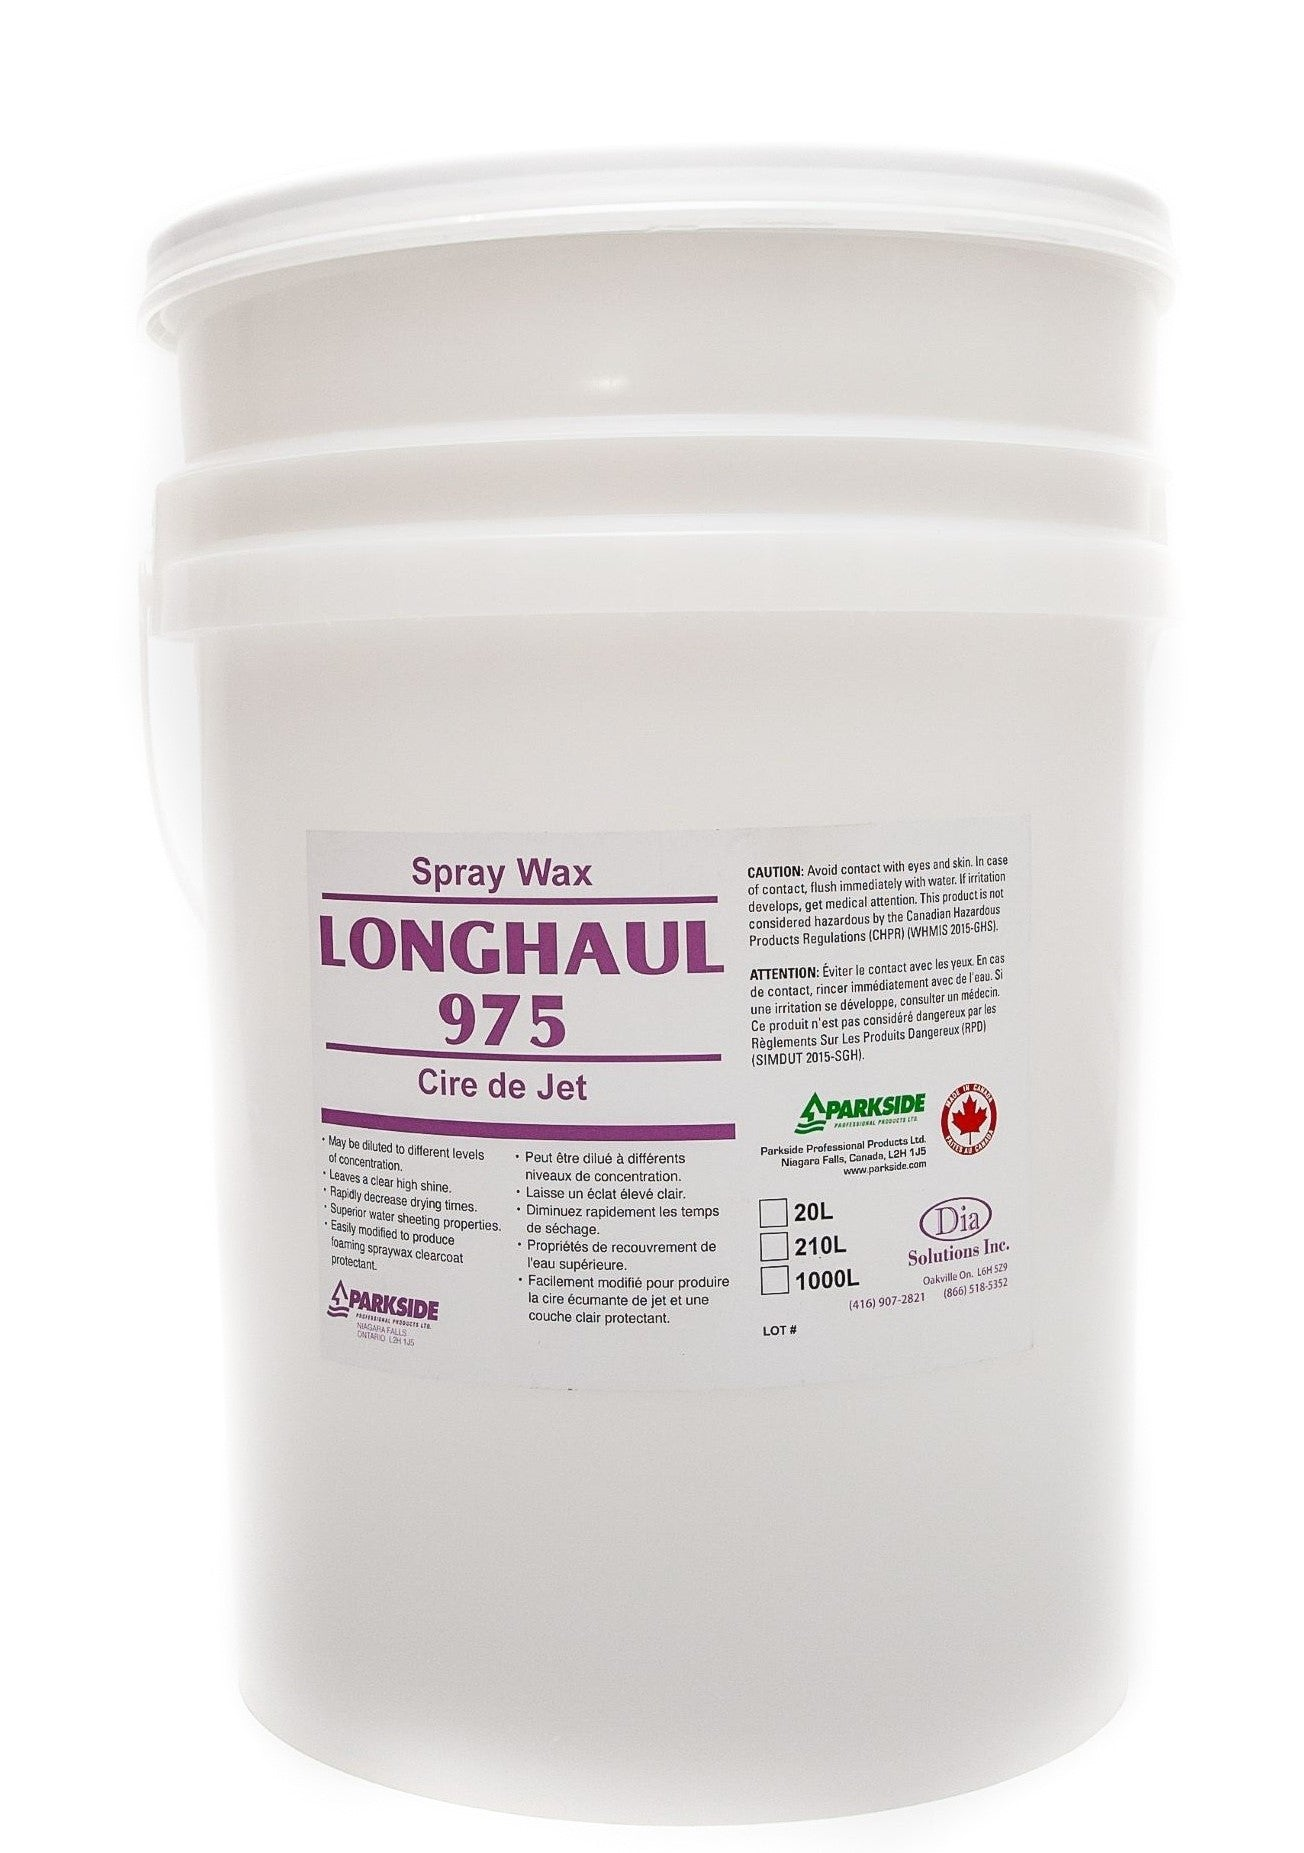 Longhaul 975 - Spray Wax